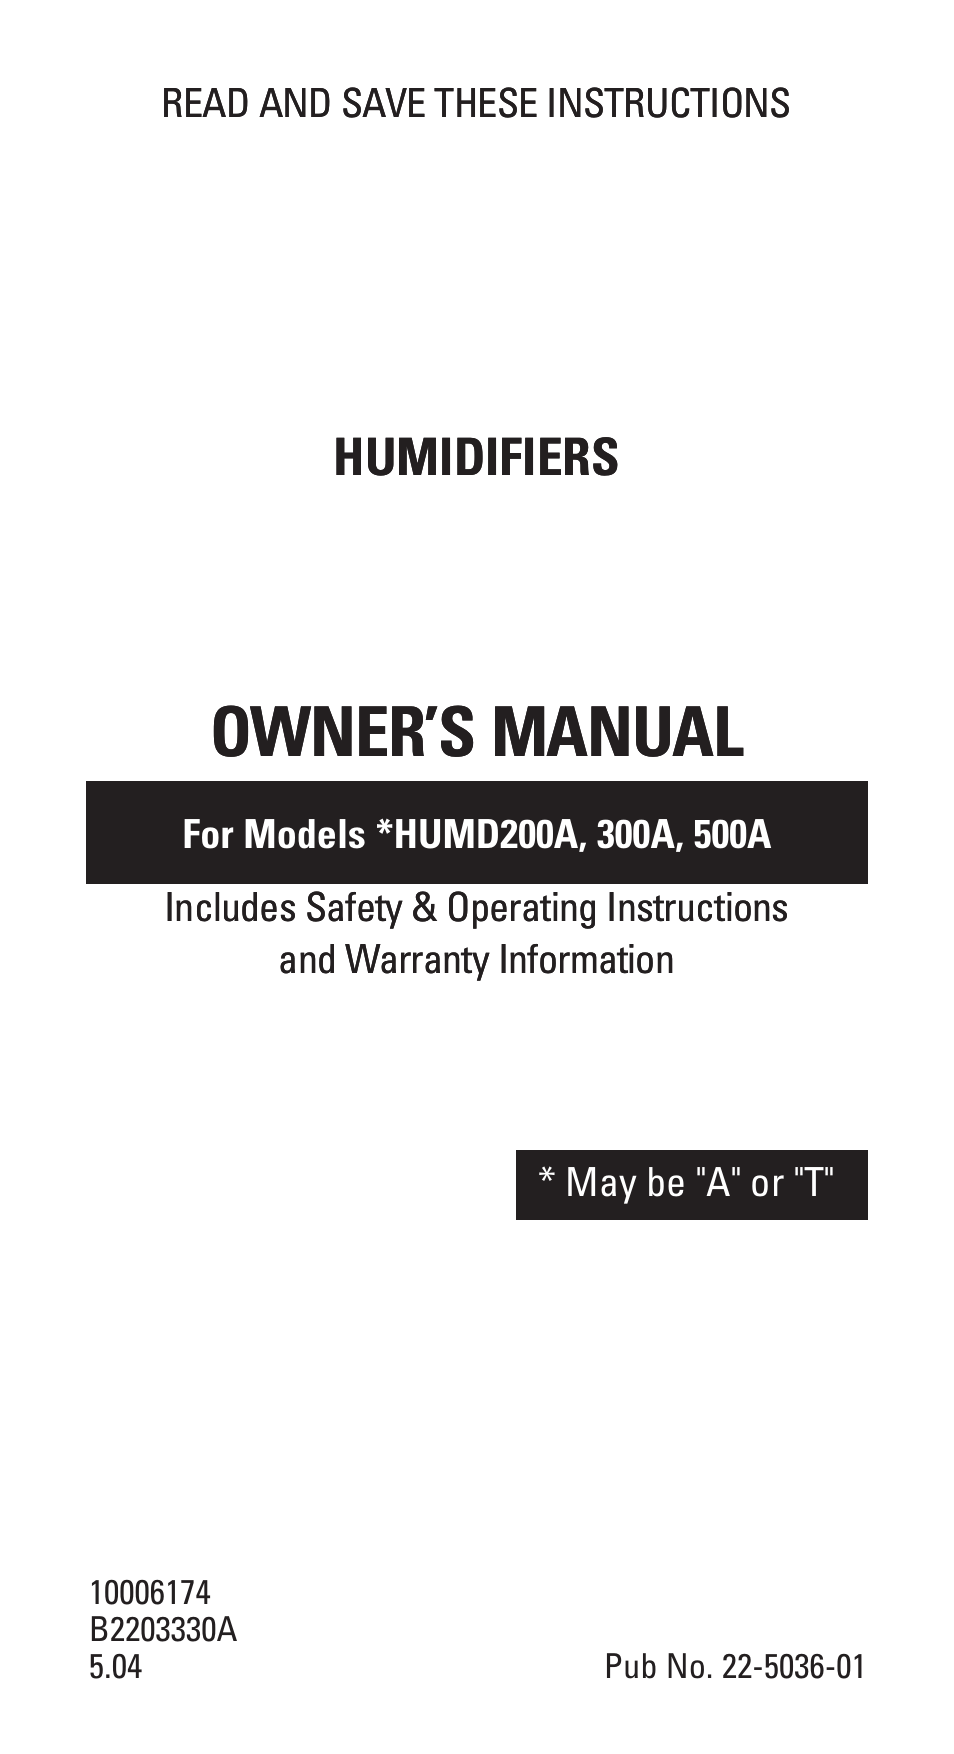 American standard 300a user manual 16 pages also for 200a 500a publicscrutiny Image collections